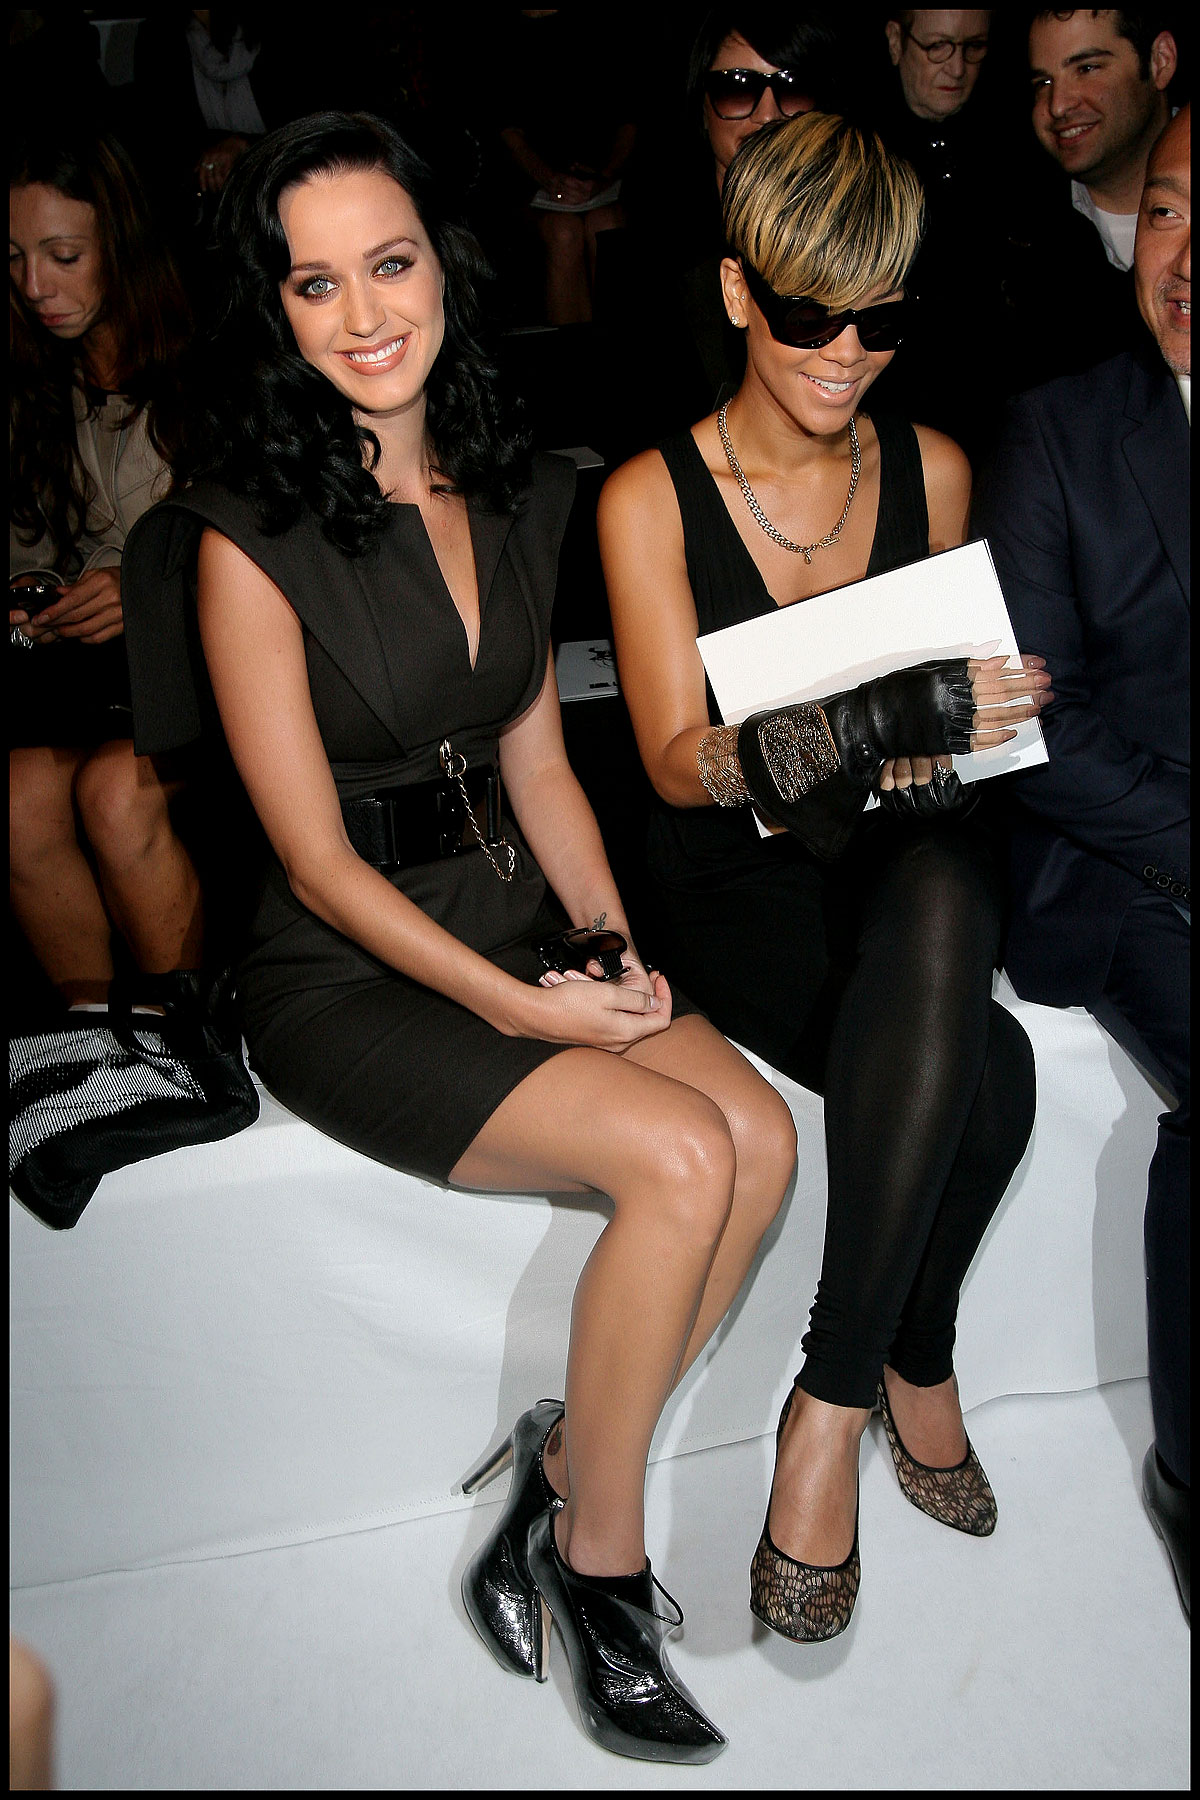 PHOTO GALLERY: Katy Perry Does Paris Fashion Week